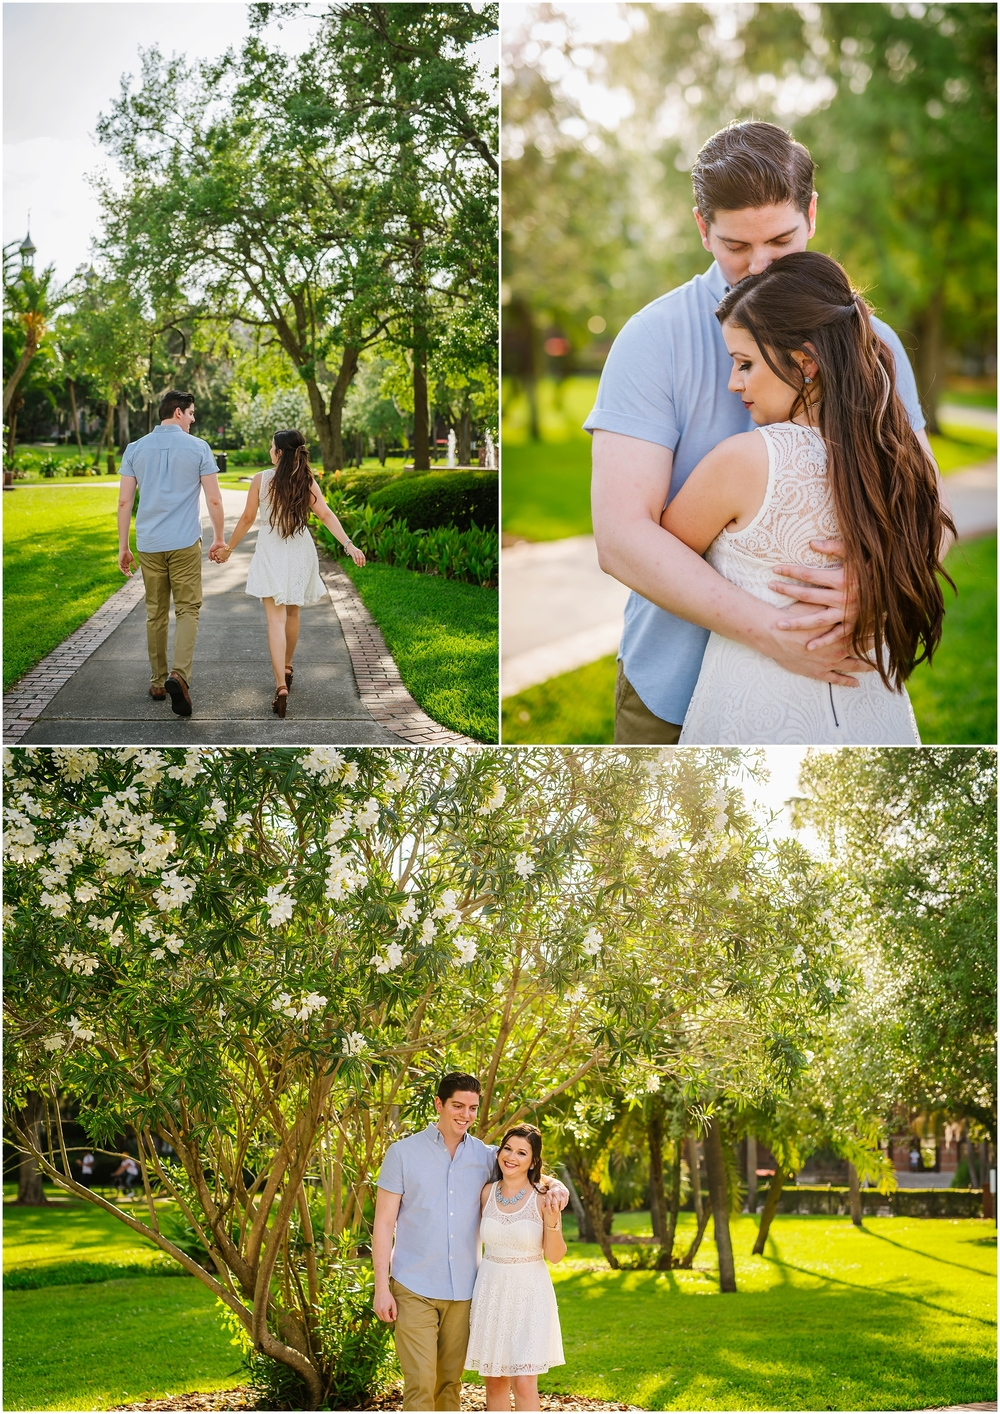 downtown-tampa-engagement-photography-ashlee-hamon_0004.jpg